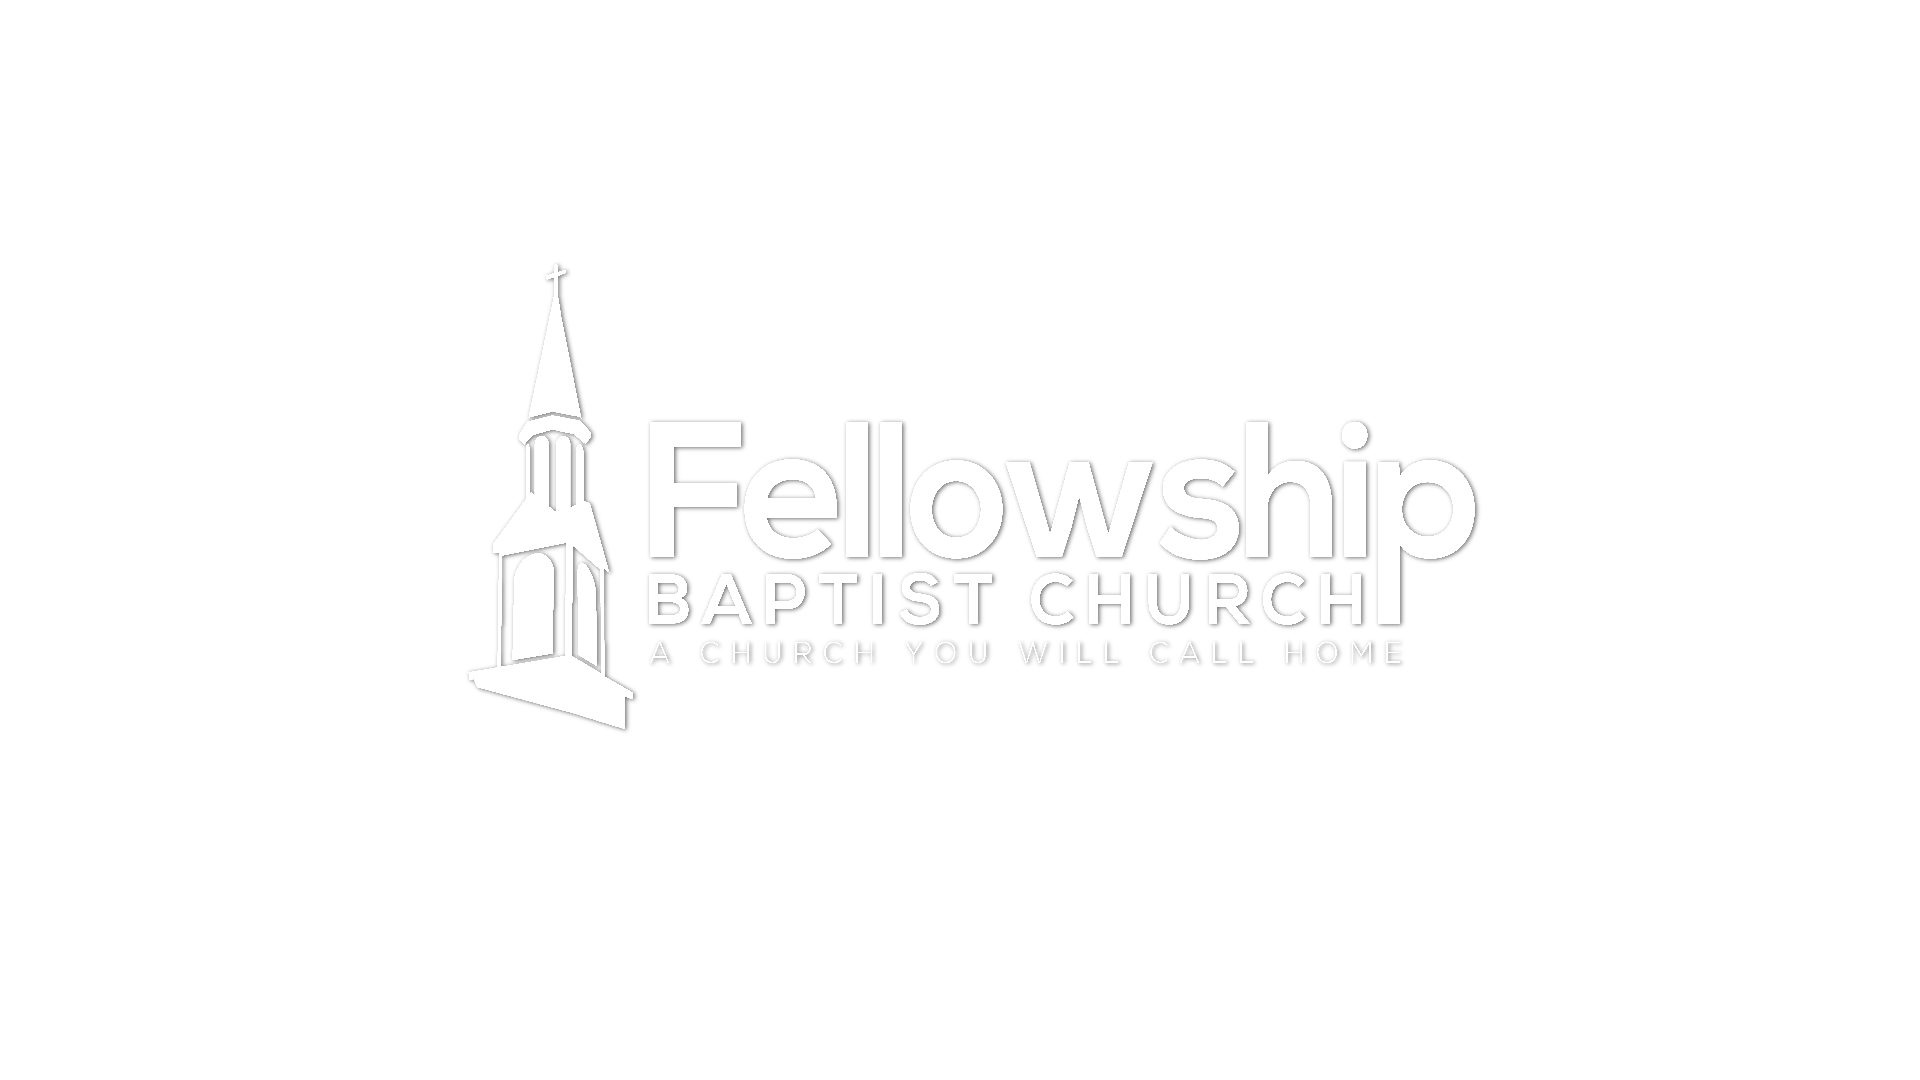 Fellowship Baptist Church of Parkersburg, WV